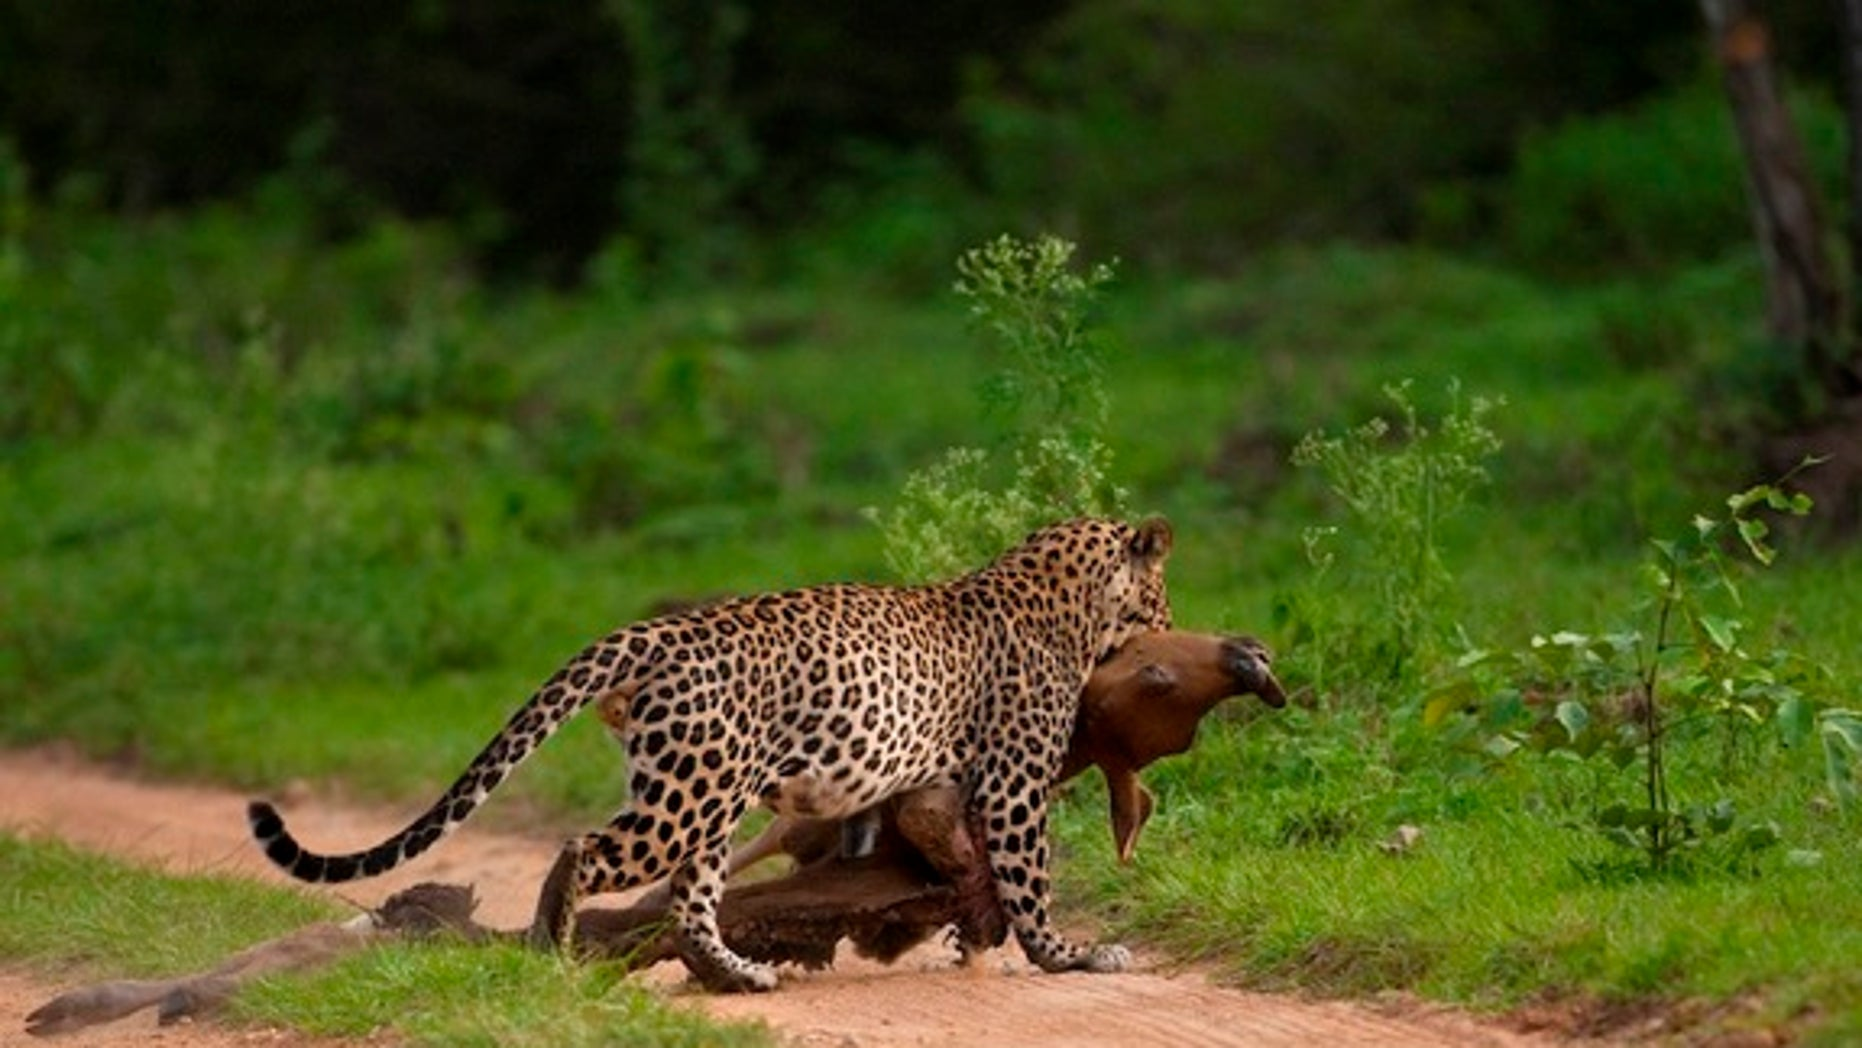 A leopard drags a bison calf to a safe spot in this photograph captured by a visitor to Bandipur Tiger Preserve in India.